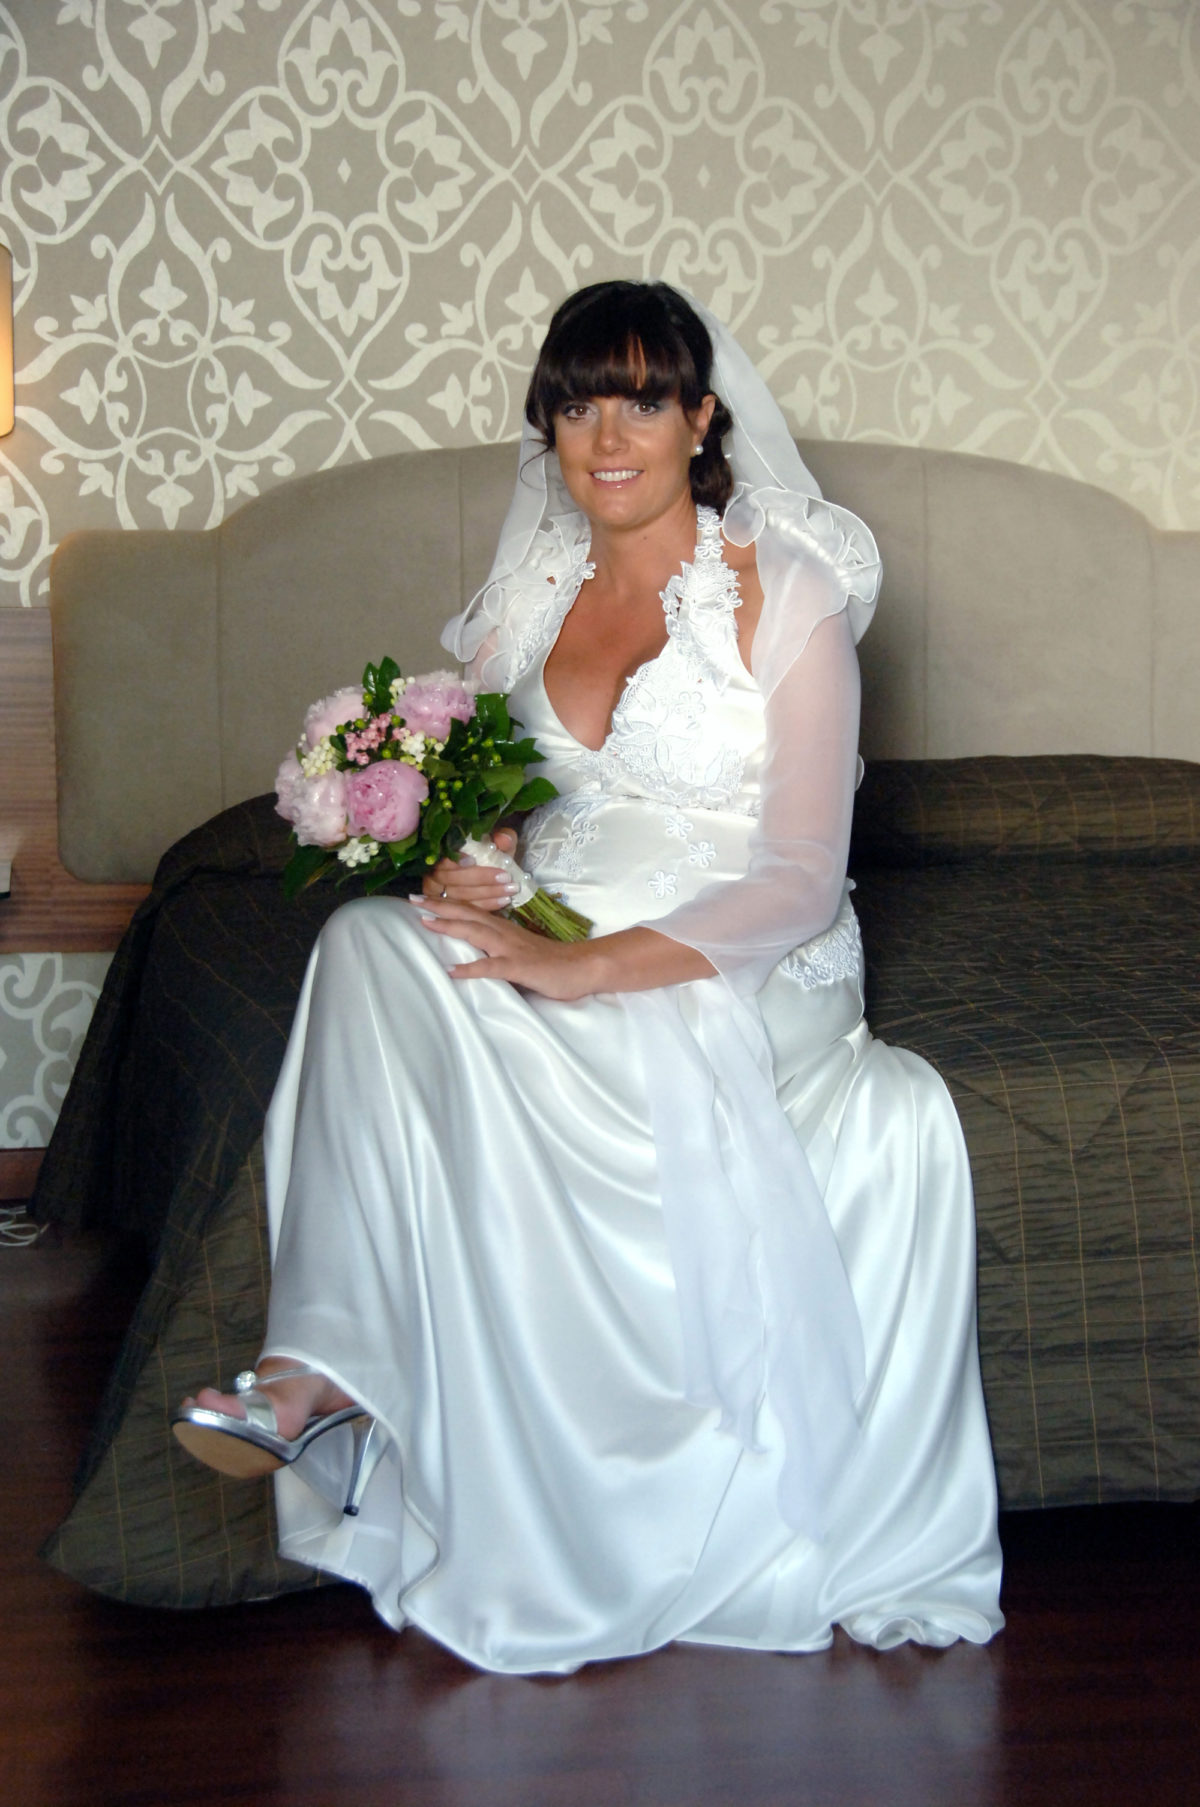 Enza and Mario - the bride is ready